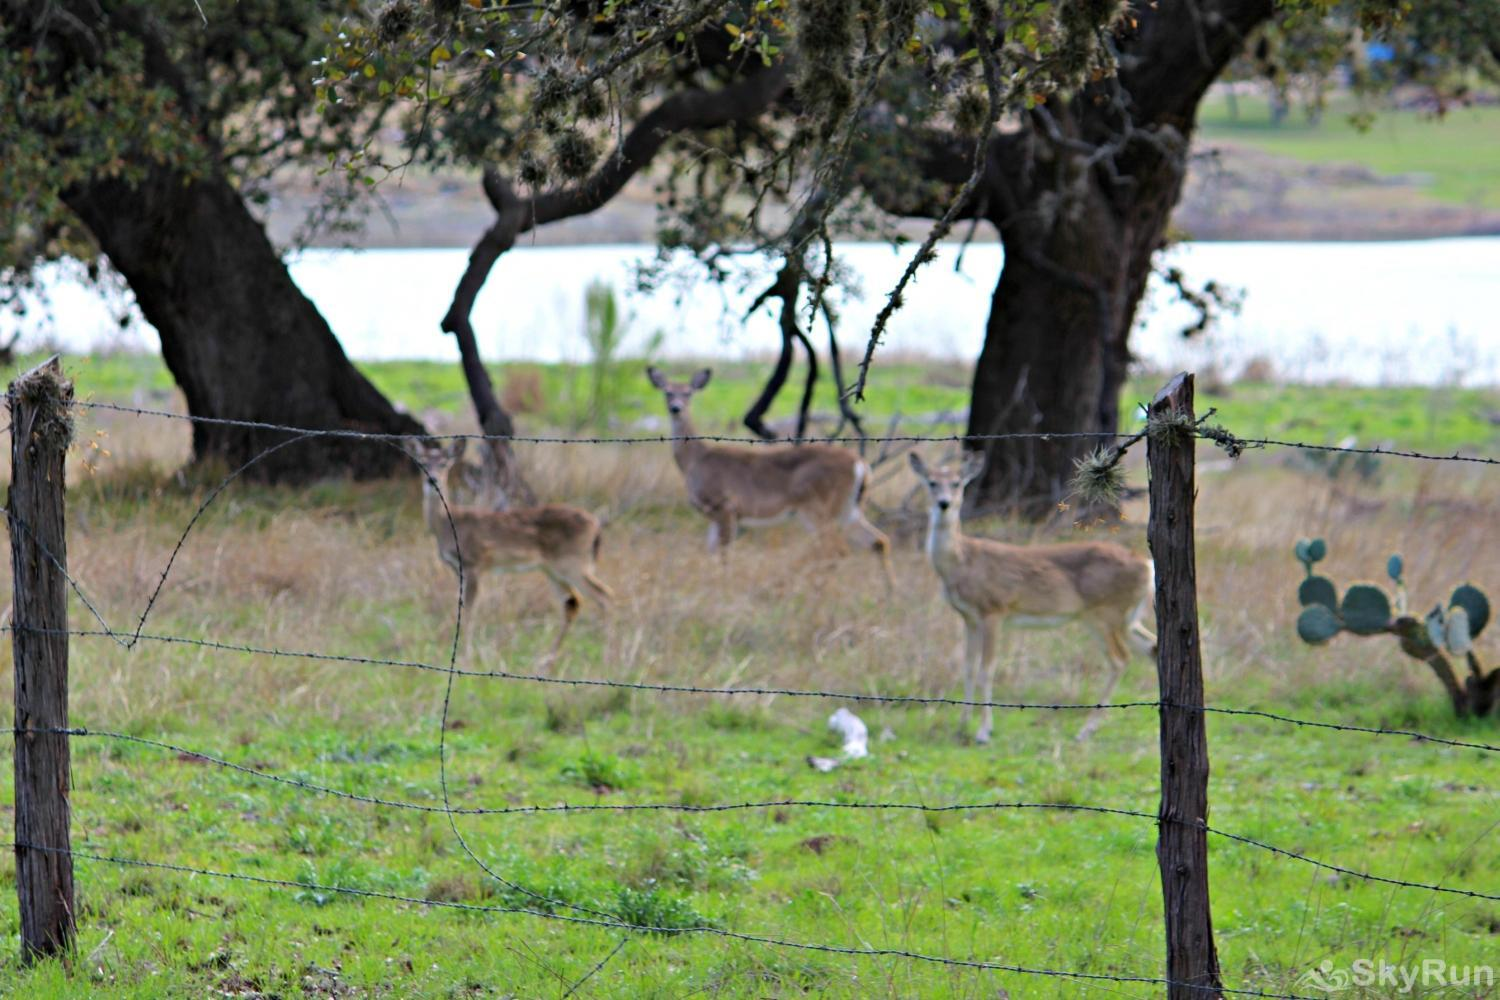 LAKESIDE HAVEN Friendly Neighborhood Whitetail Deer